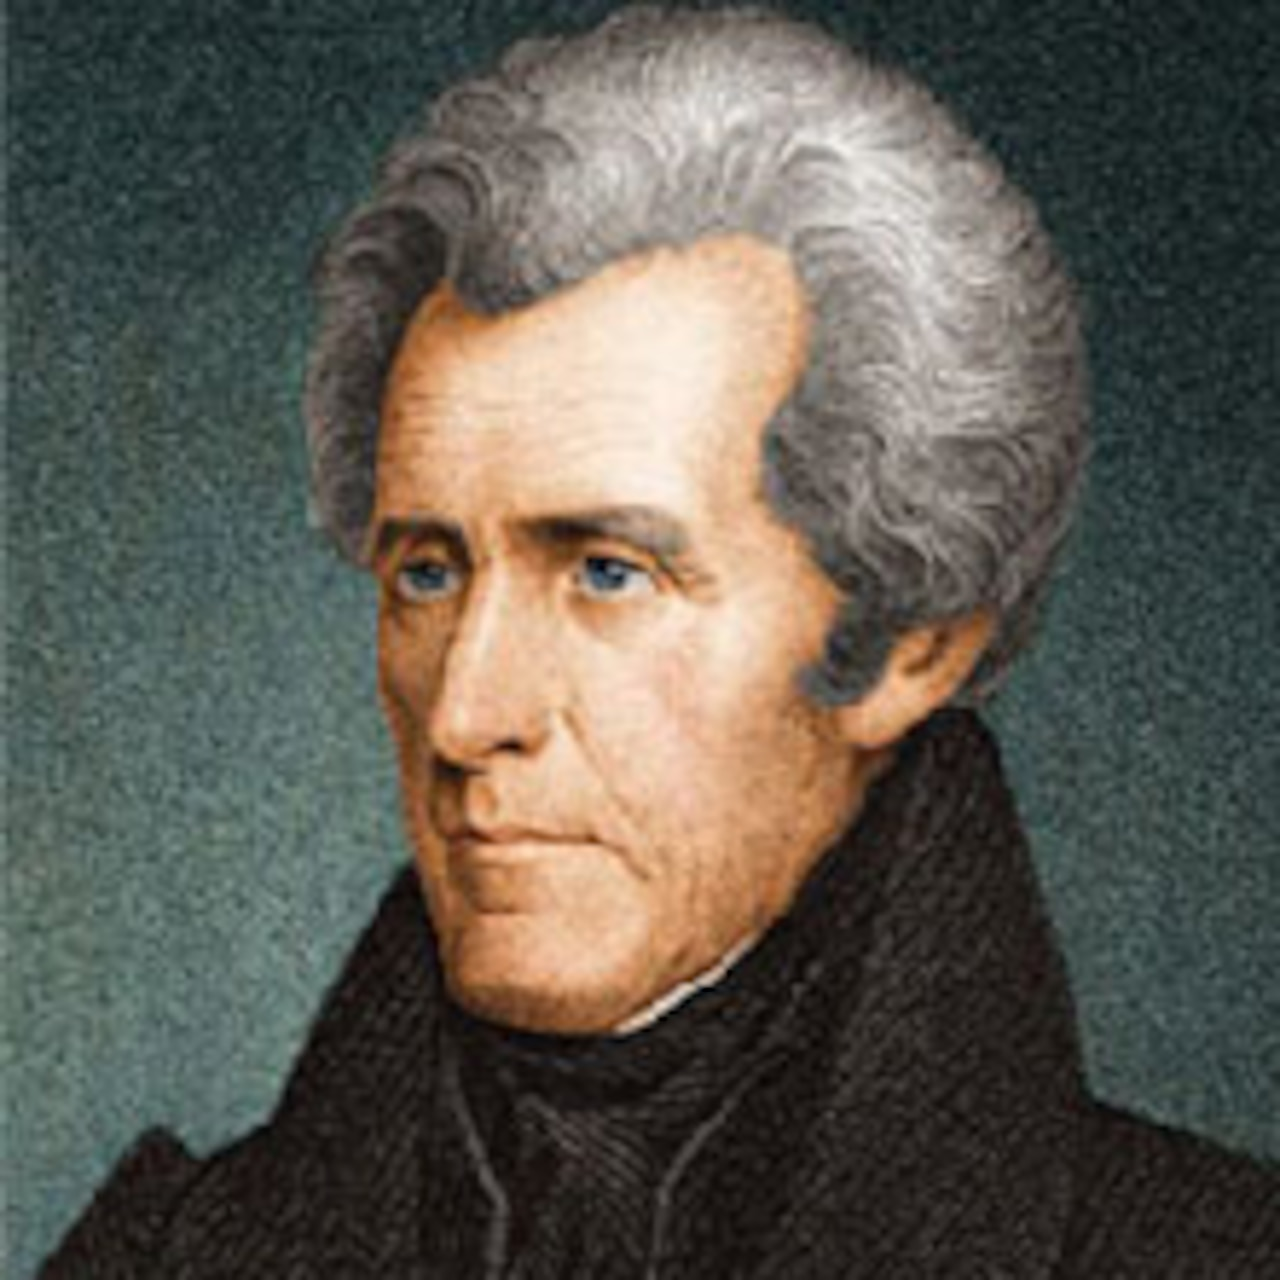 A graphic of Army Gen. Andrew Jackson